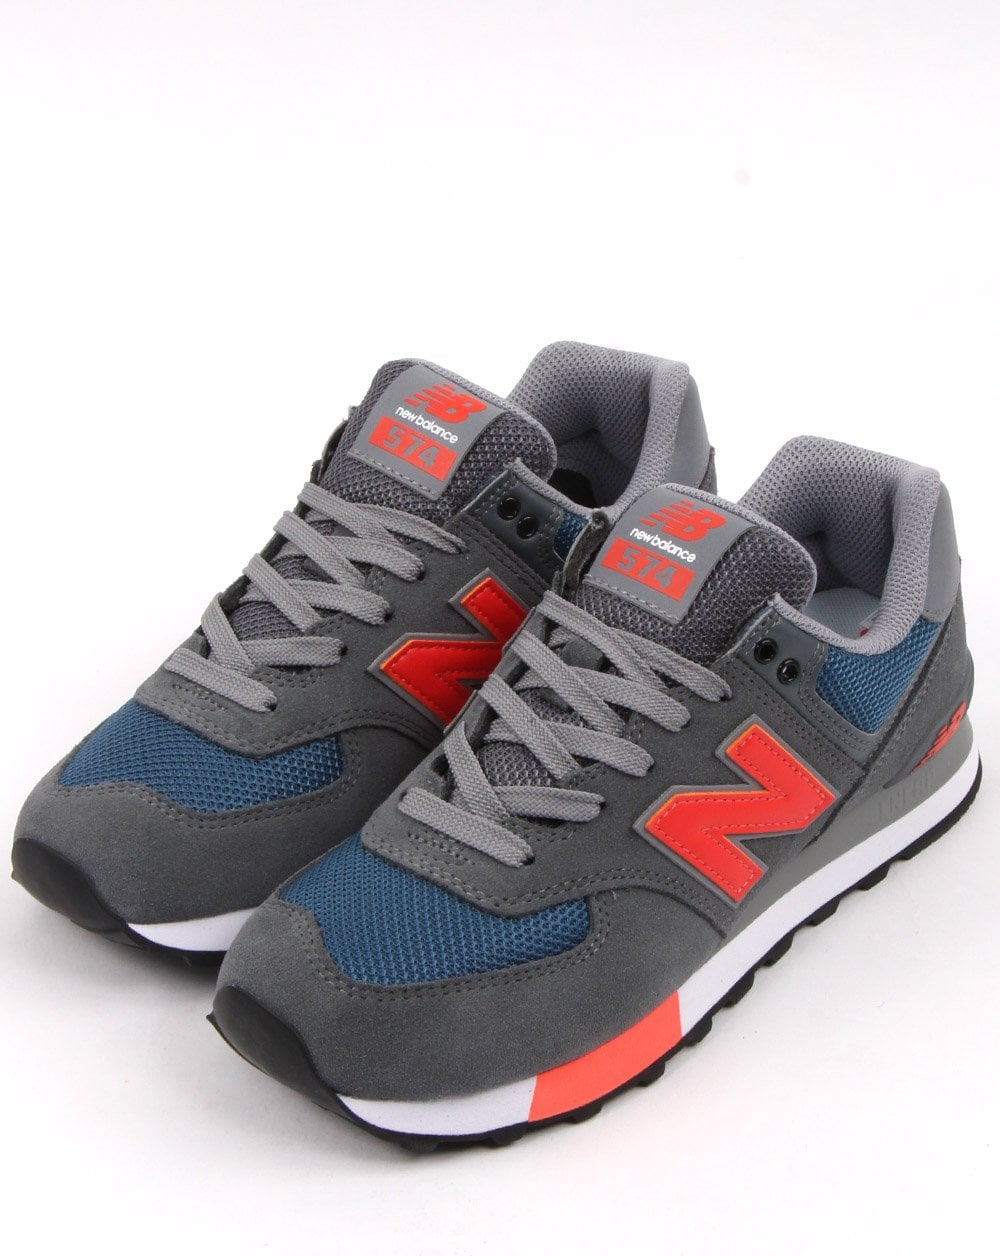 wholesale dealer 835c1 78769 New Balance 574 Trainers Grey/Orange